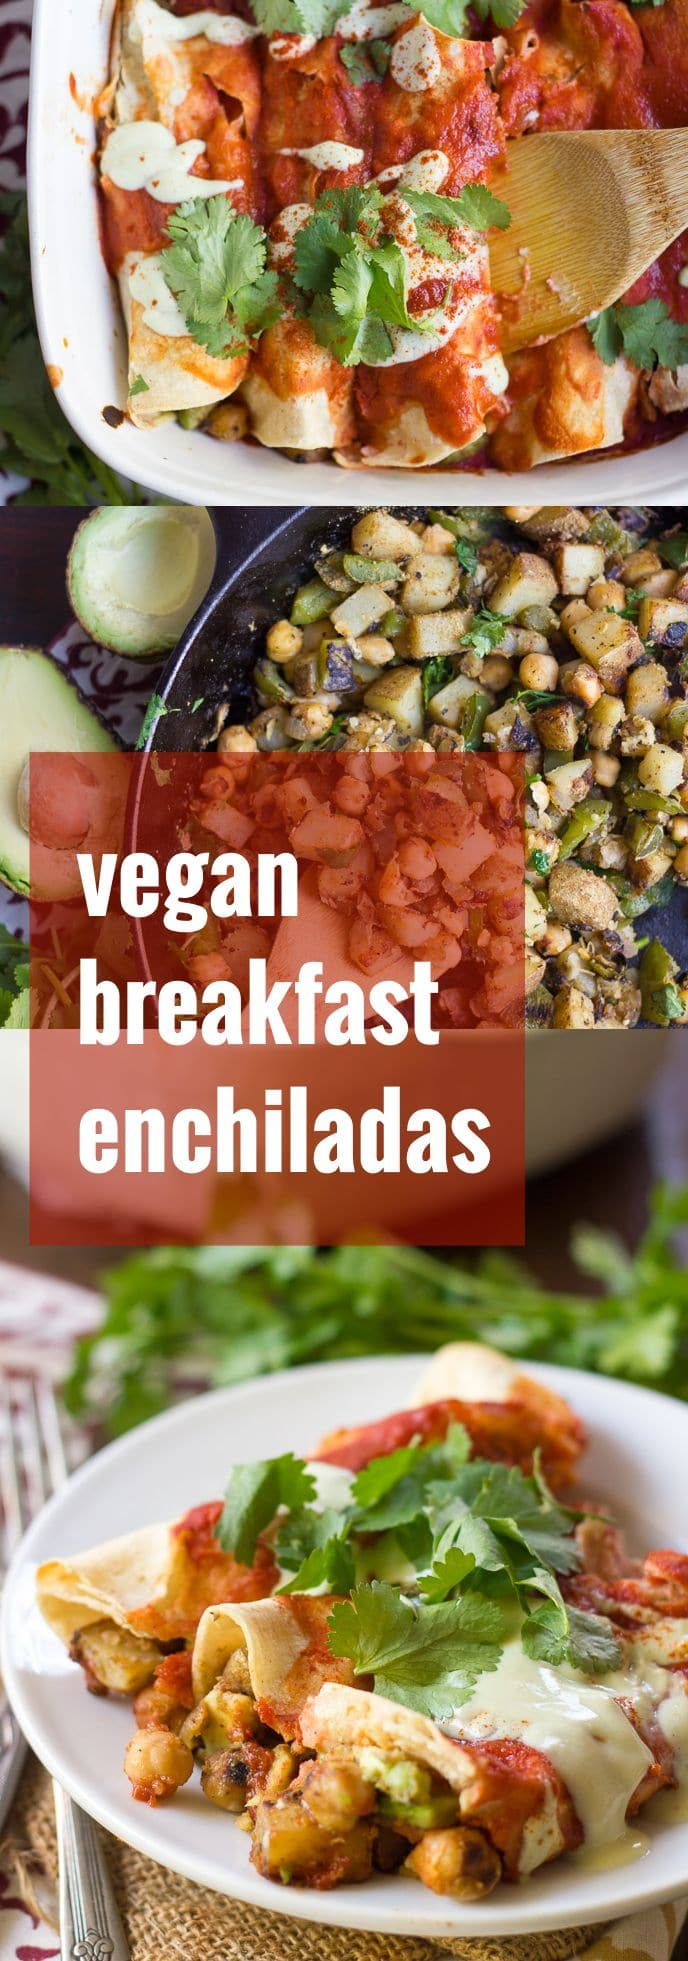 Chickpea Avocado Breakfast Enchiladas